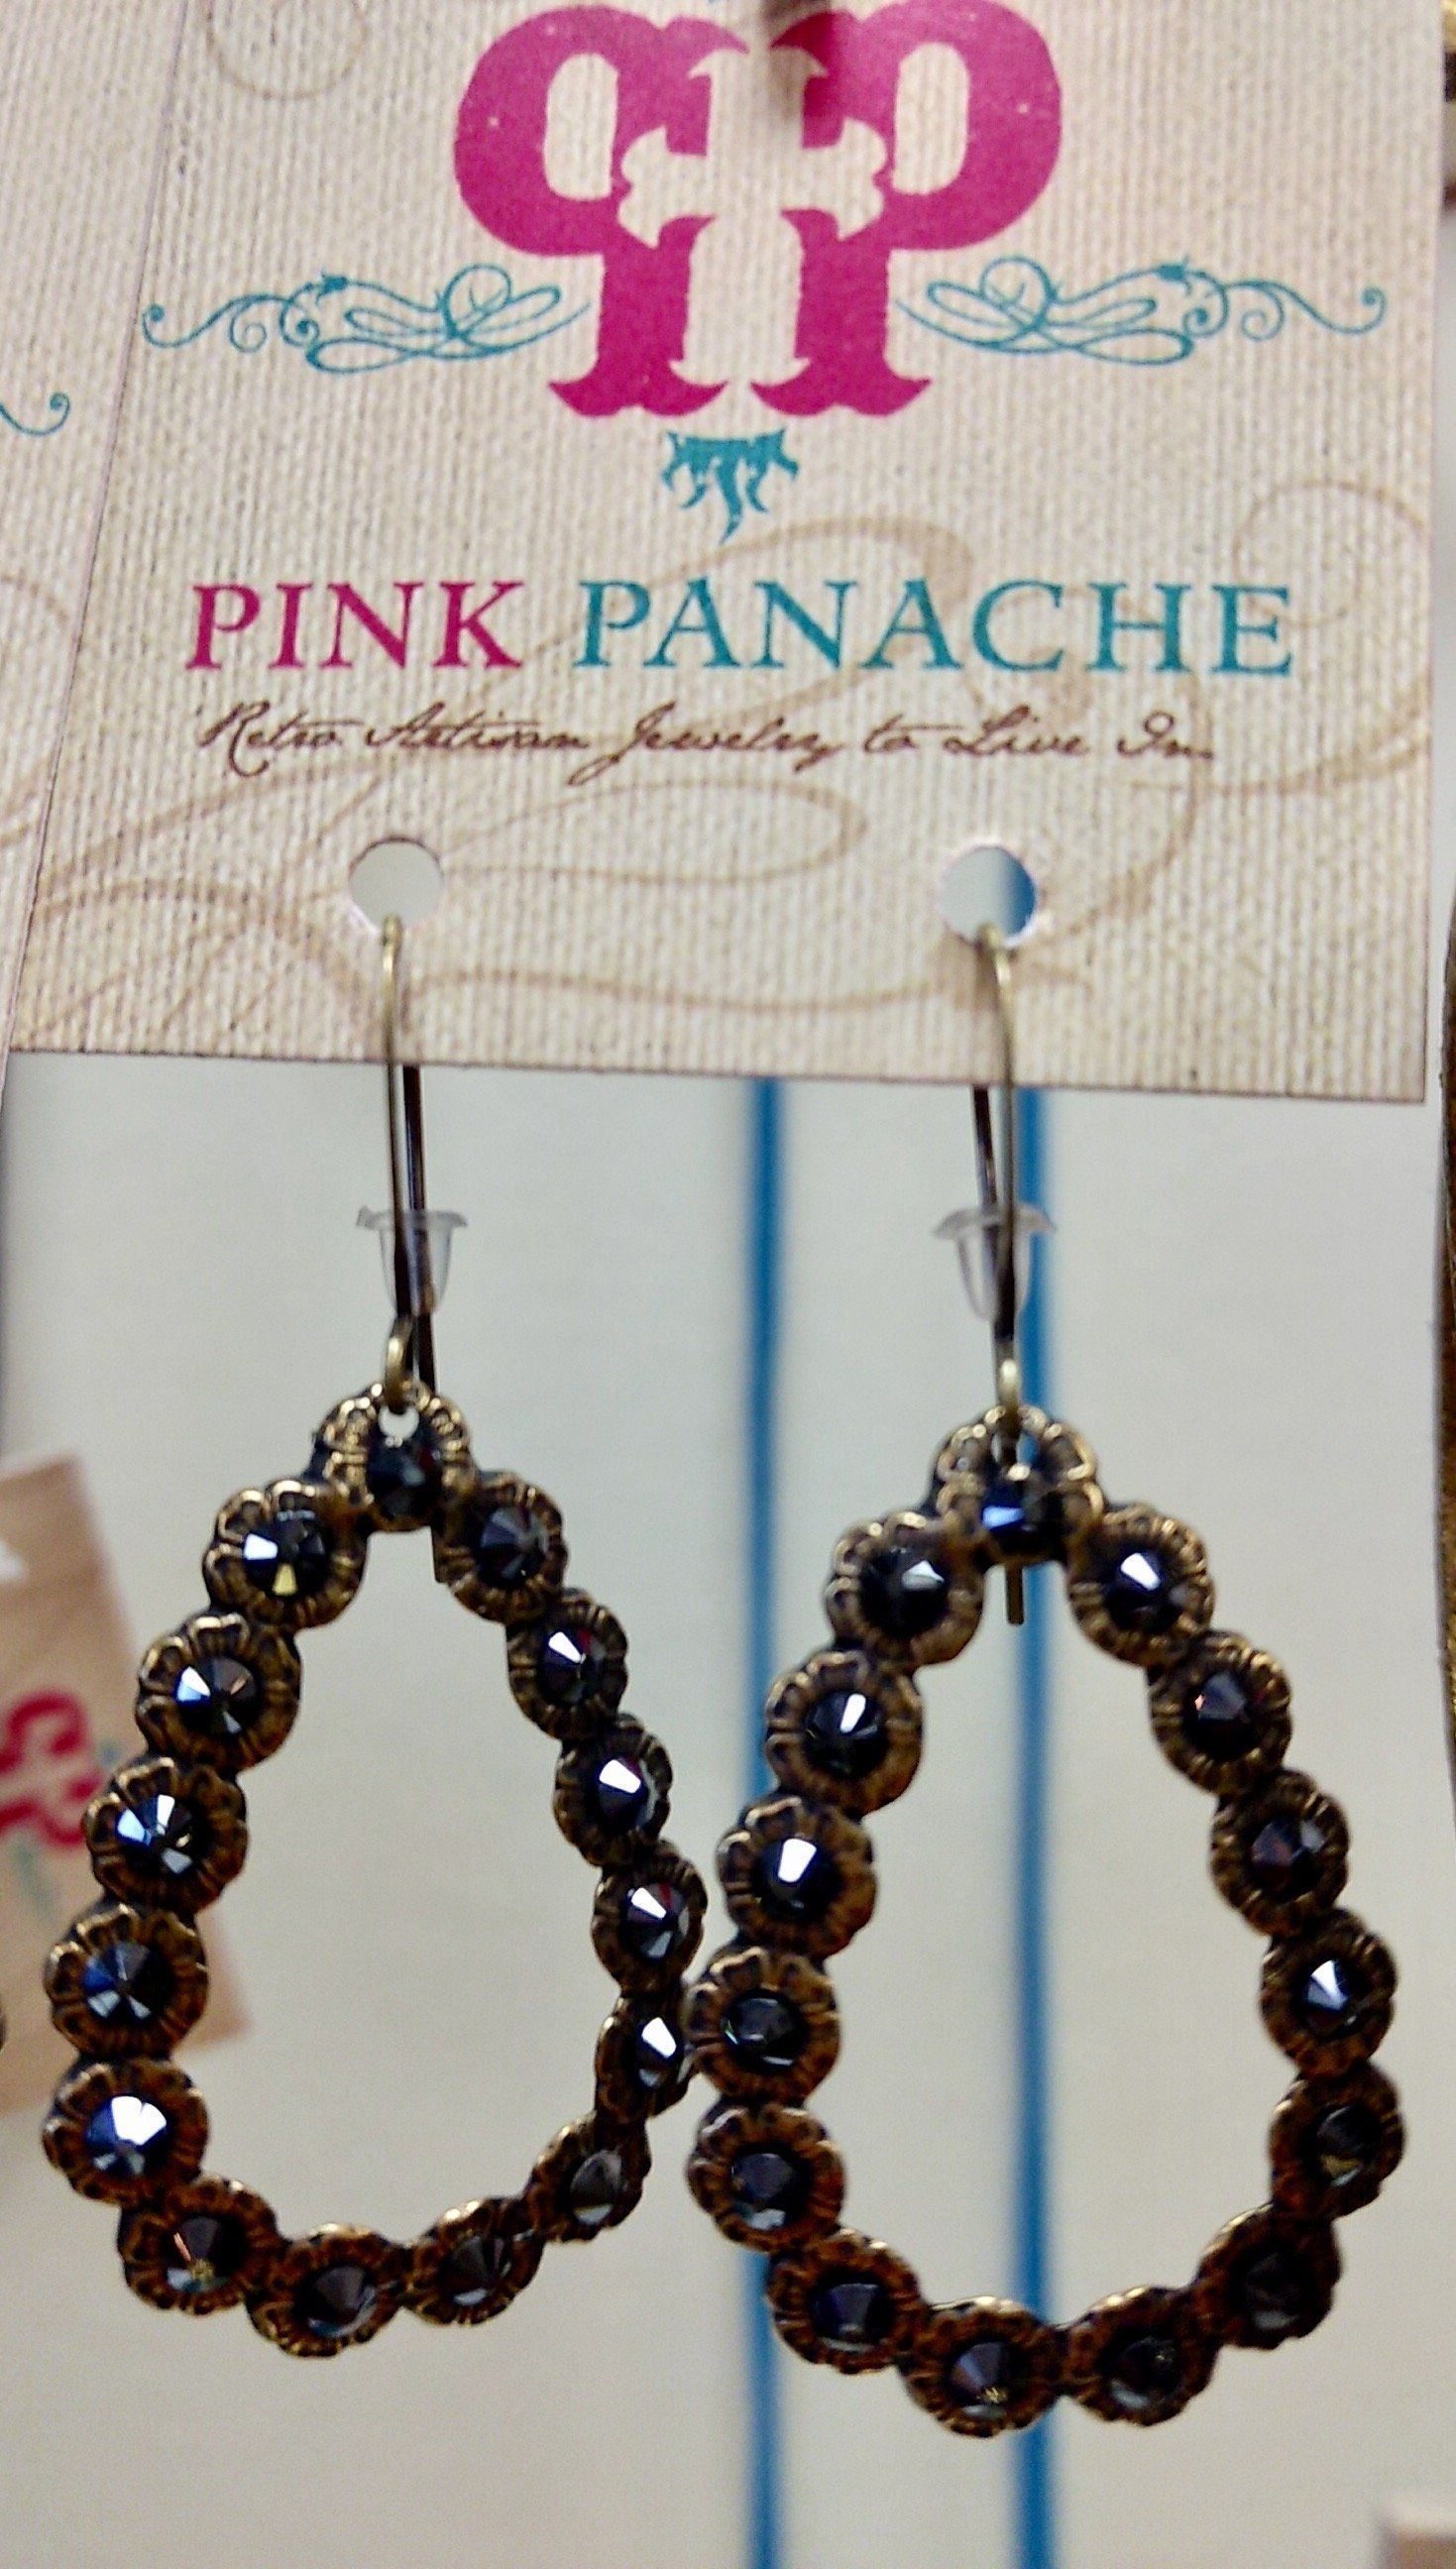 Pink Panache Black Crystal Beaded Lightweight Earrings